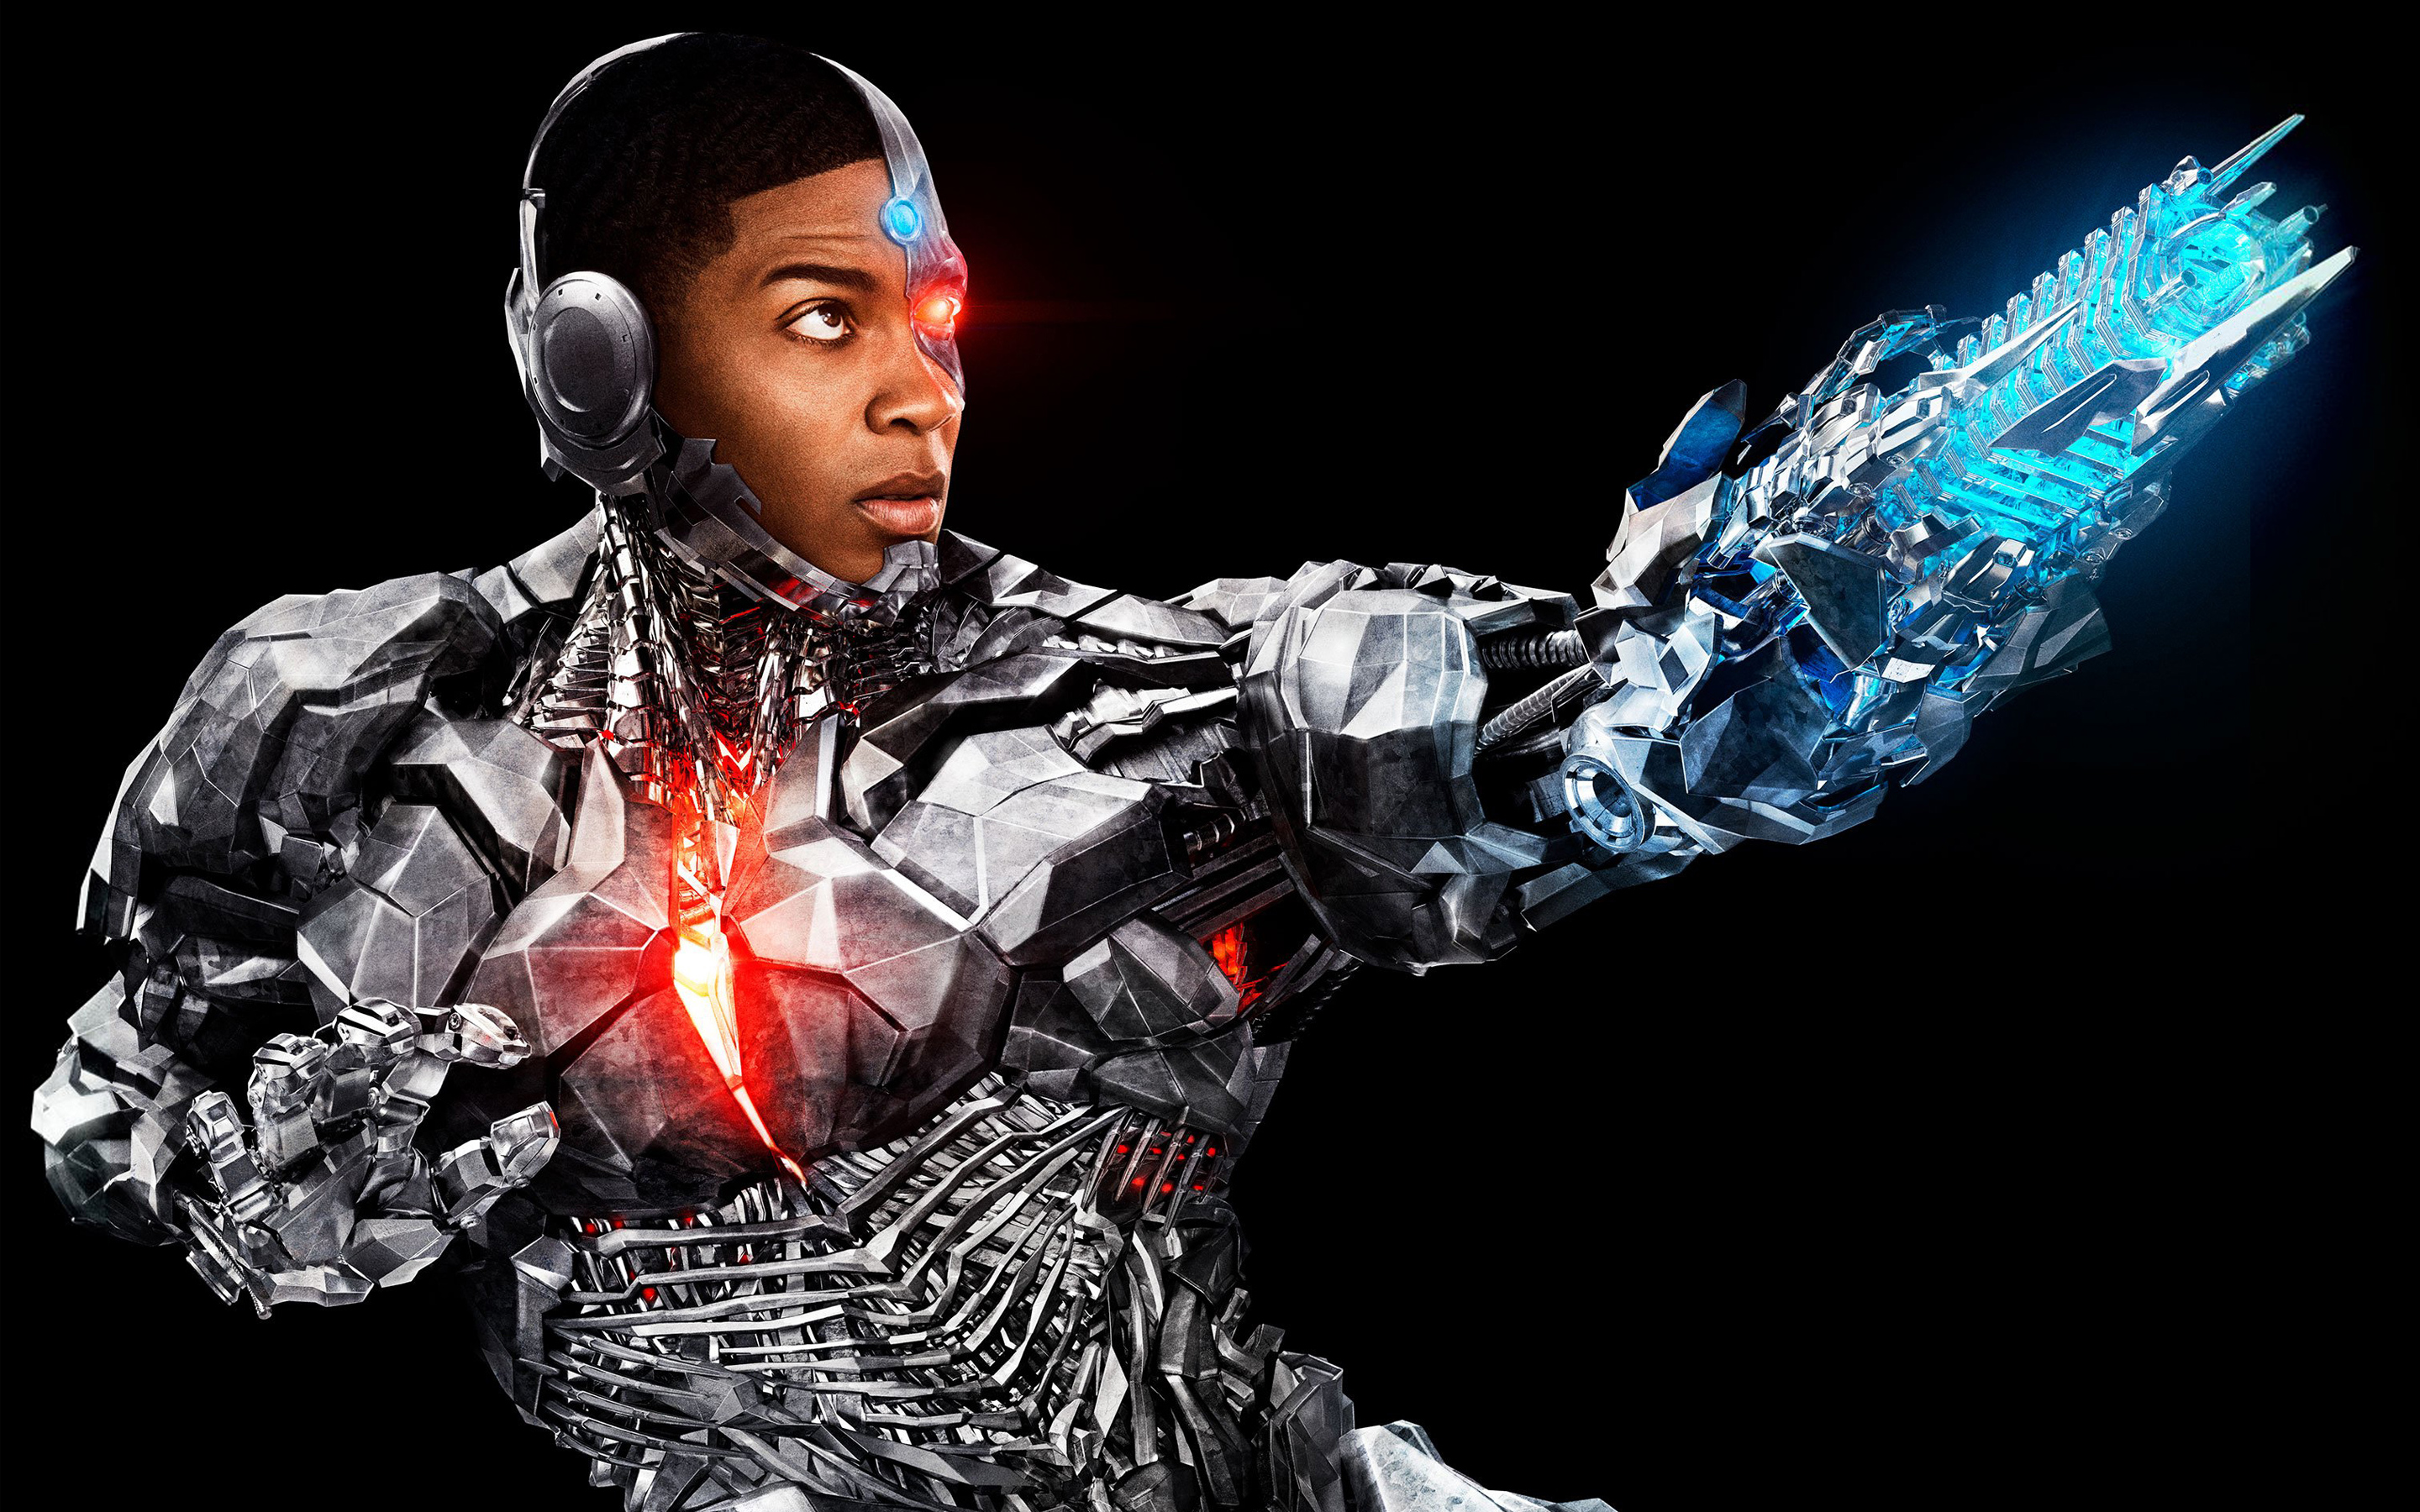 Cyborg In Justice League 4k Wallpapers Hd Wallpapers